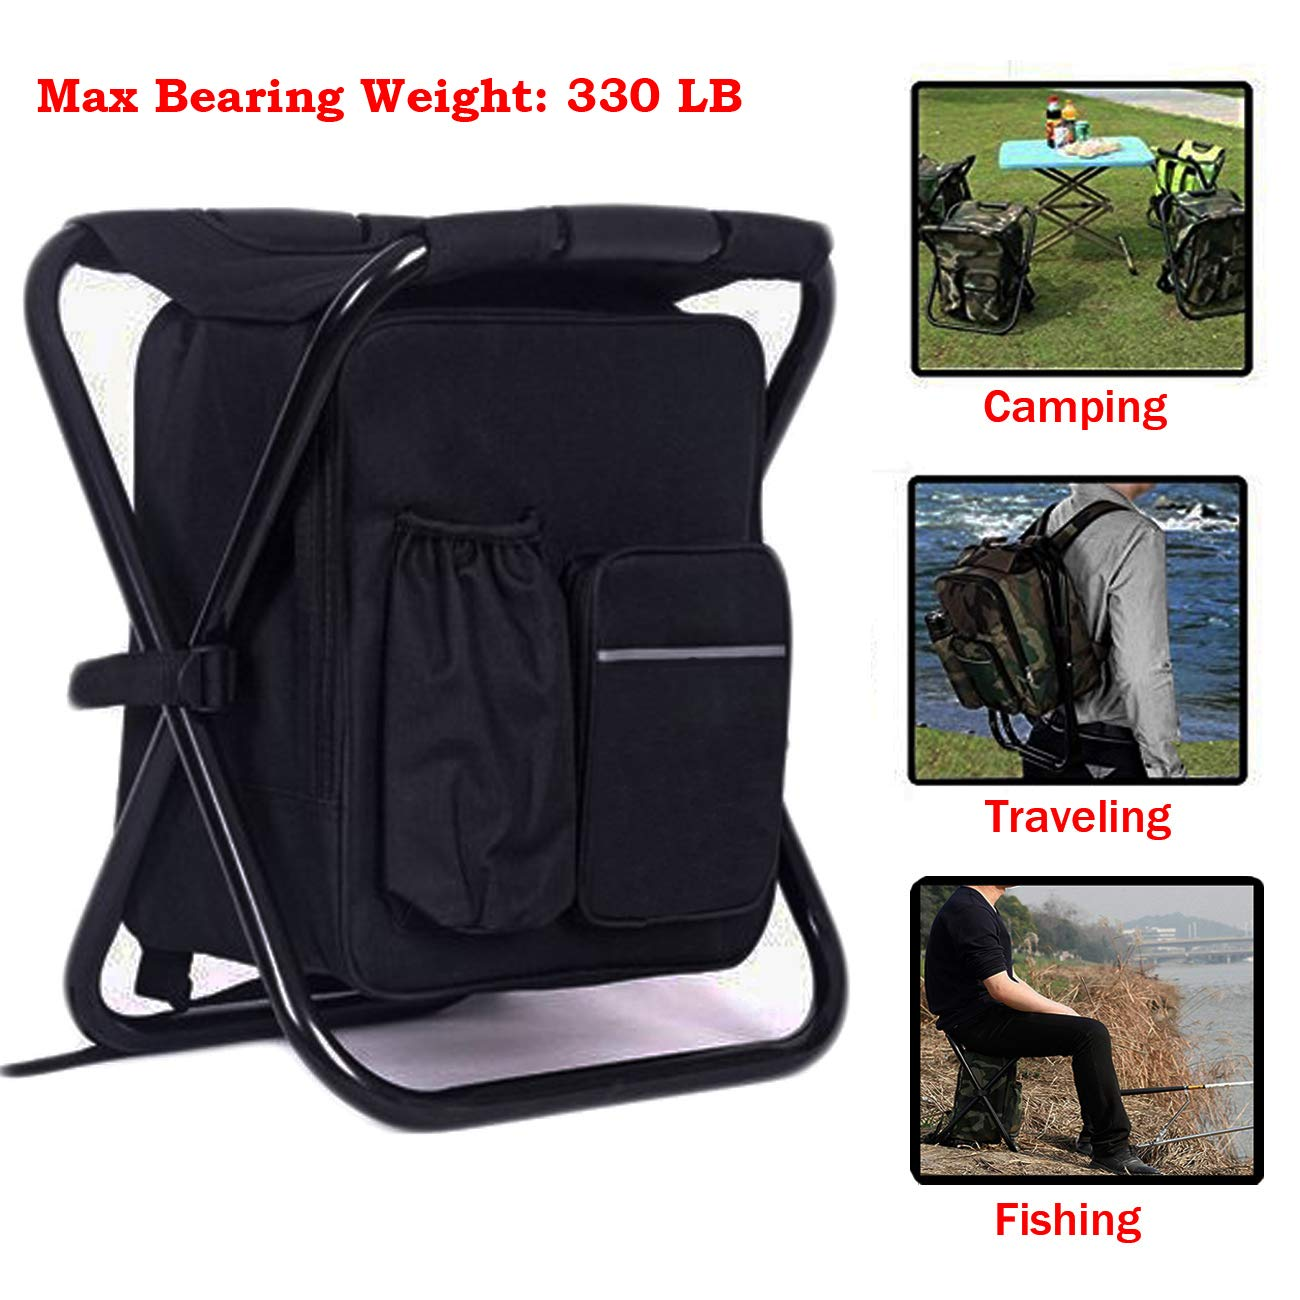 Outdoor Folding Stool Portable Backpack Chair Stool With Insulated Cooler Bag For Camping Fishing Hiking Beach Making Things Convenient For The People Costumes & Accessories